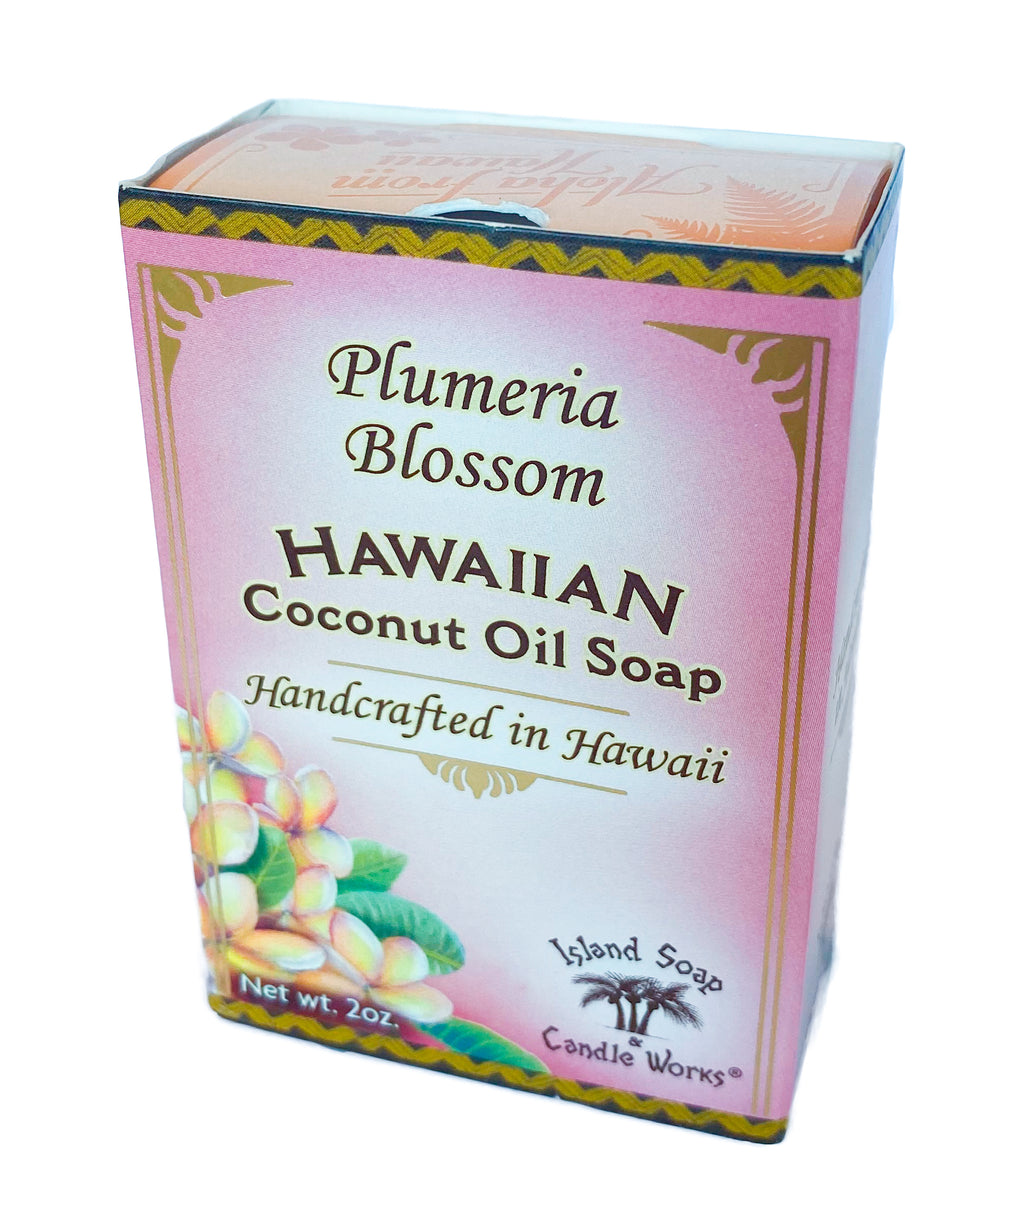 Plumeria Blossom - 2 oz. Coconut and Palm Oil Soap